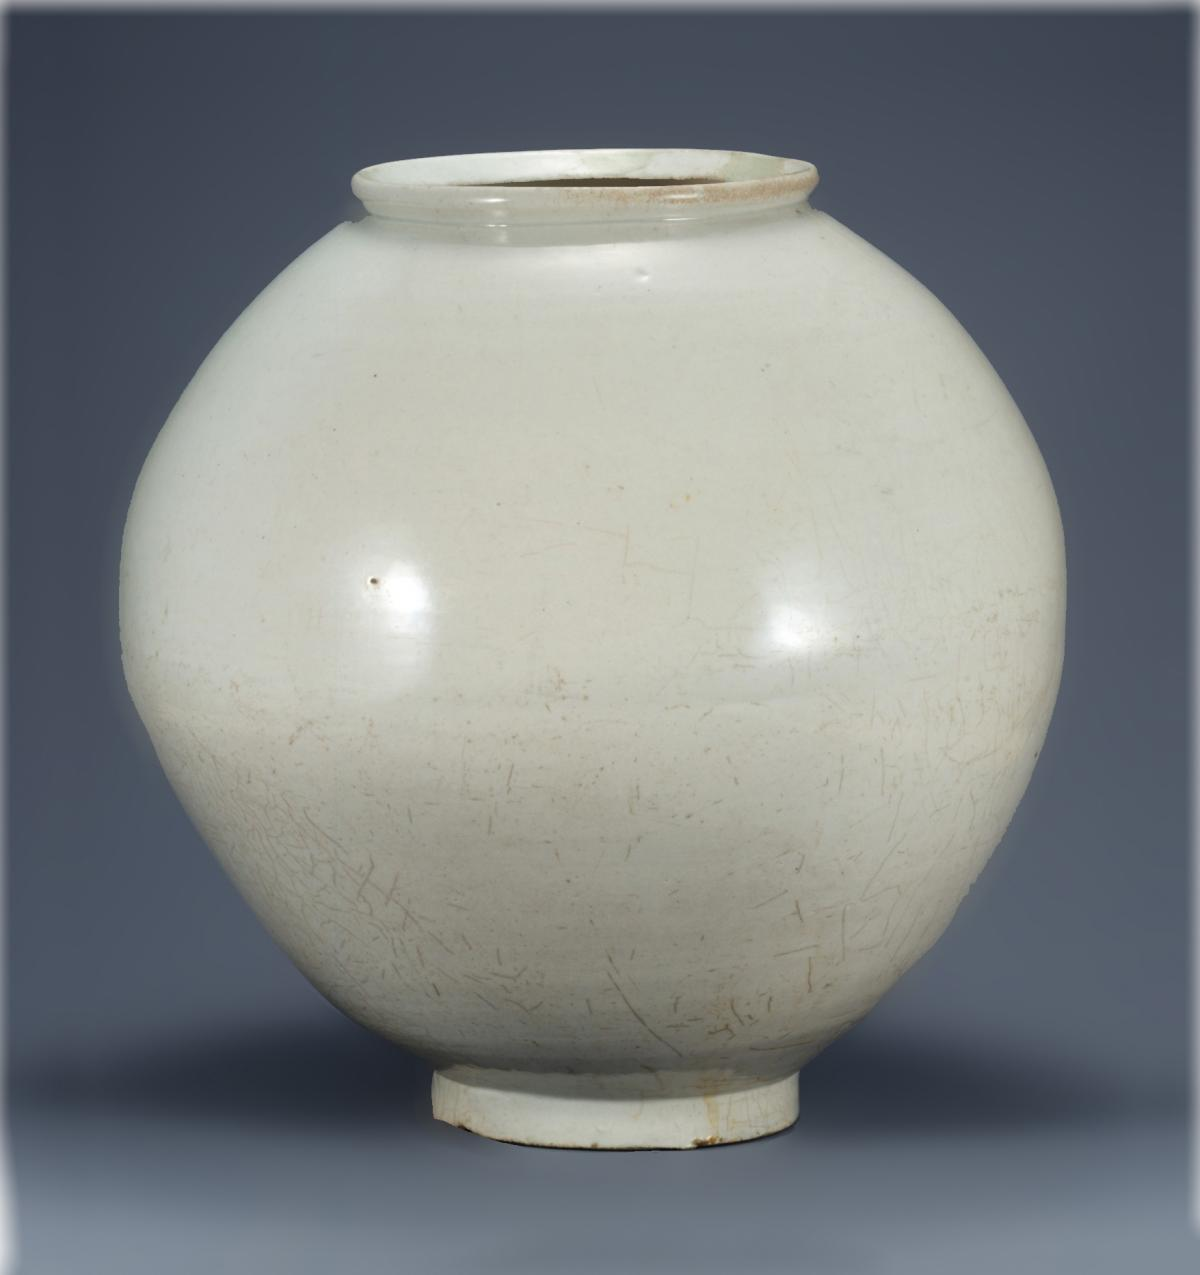 White porcelain jar, wide in the middle, with a narrower mouth and base